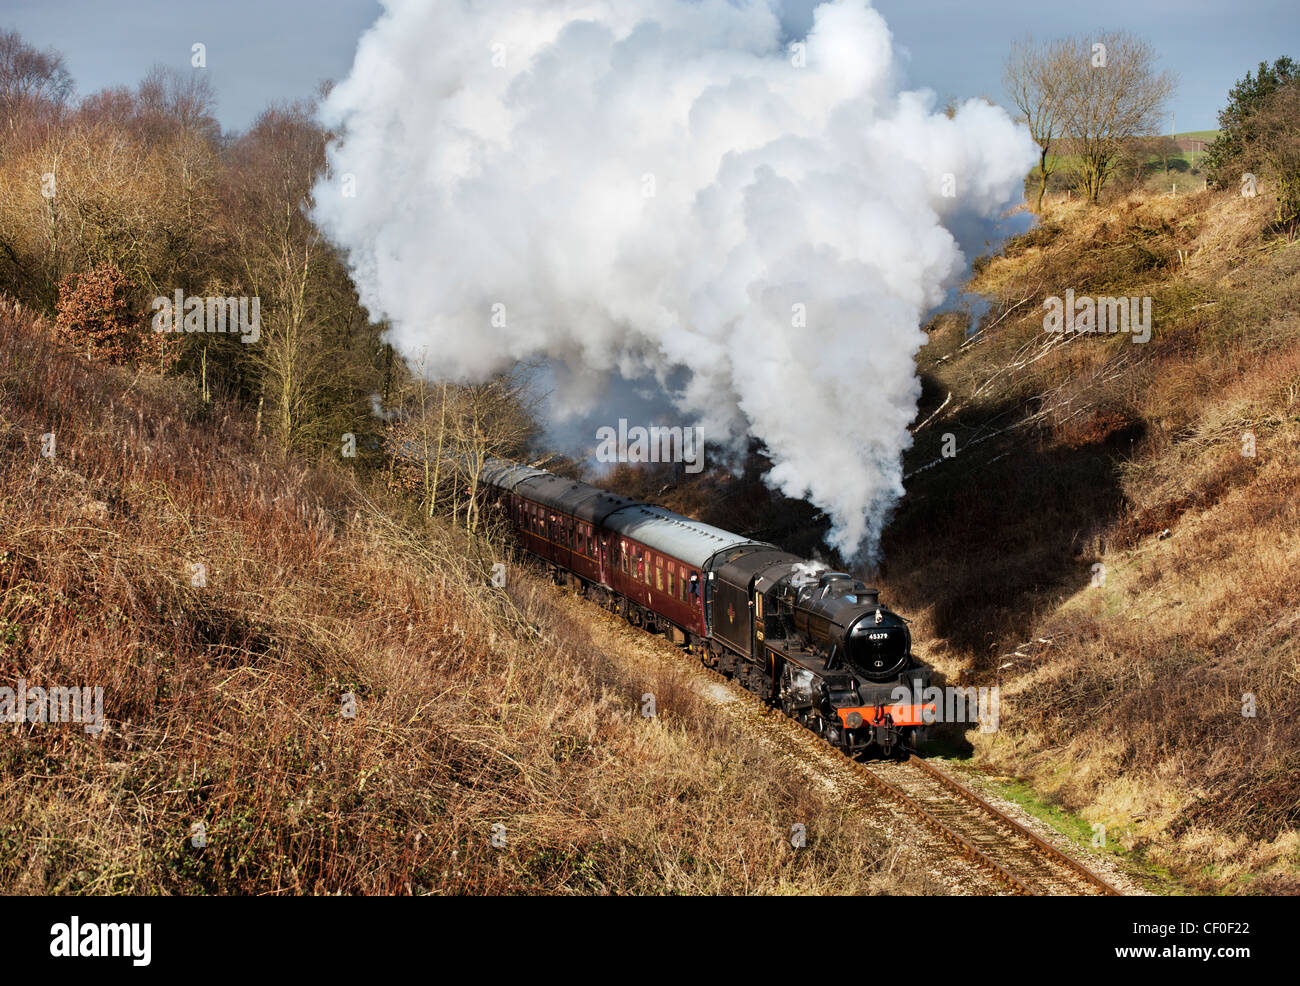 Black 5 loco number 45379  pulls a train at Bradnop on The Churnet Valley Railway, Staffordshire - Stock Image